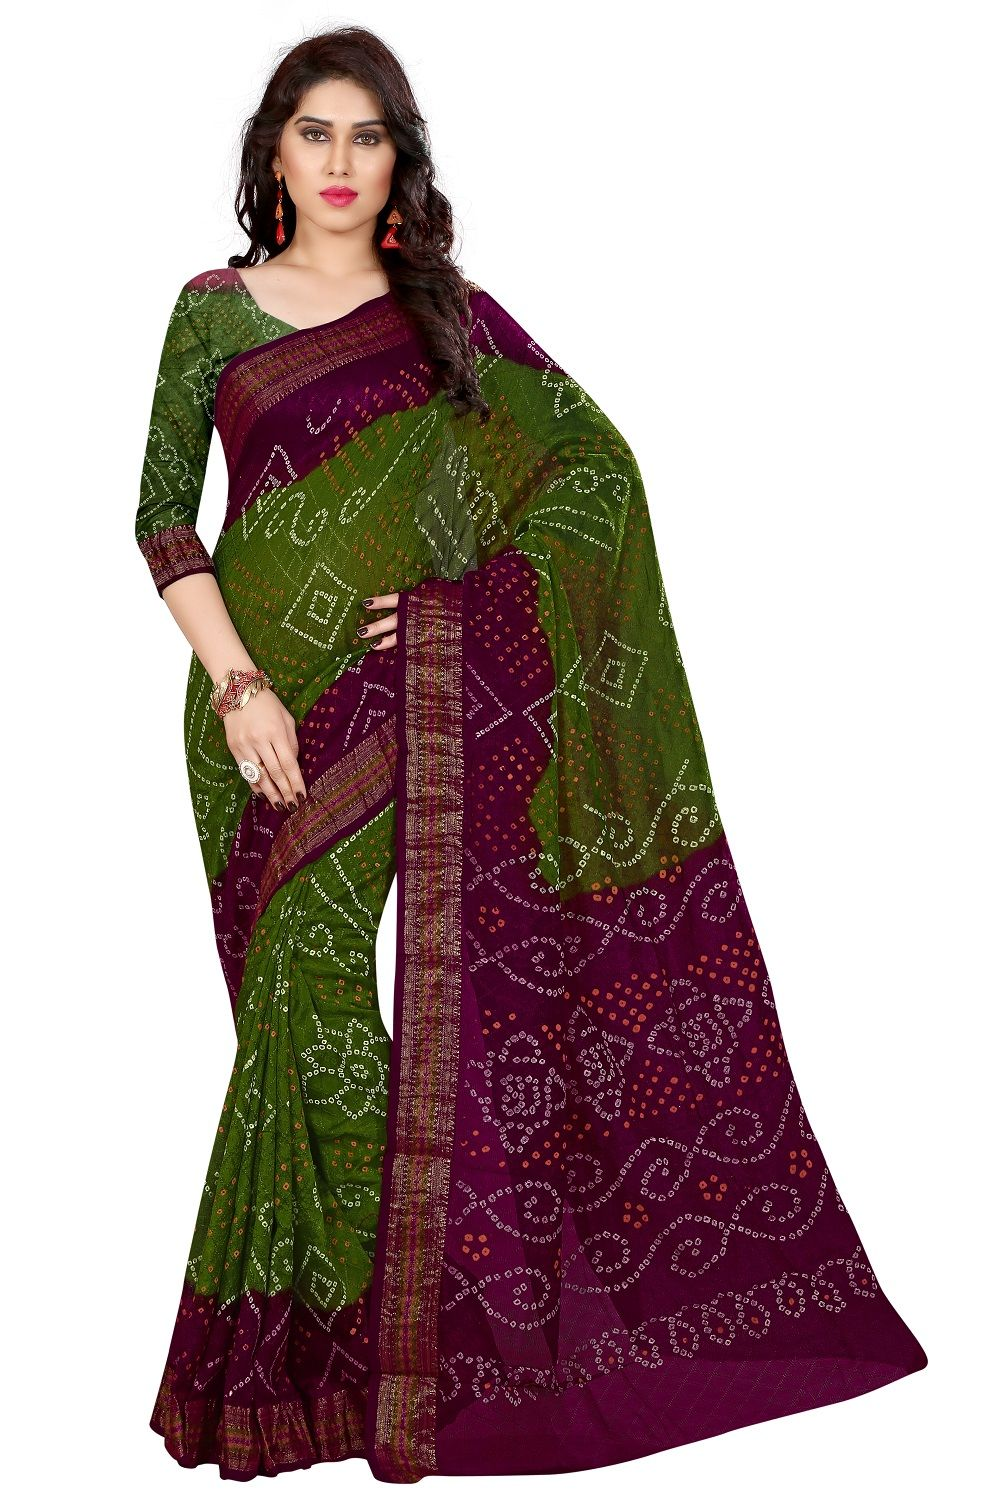 d7f17c0bc5 Blue and #Olive Green Rajasthani Printed Cotton Silk #Bandhani Saree ...